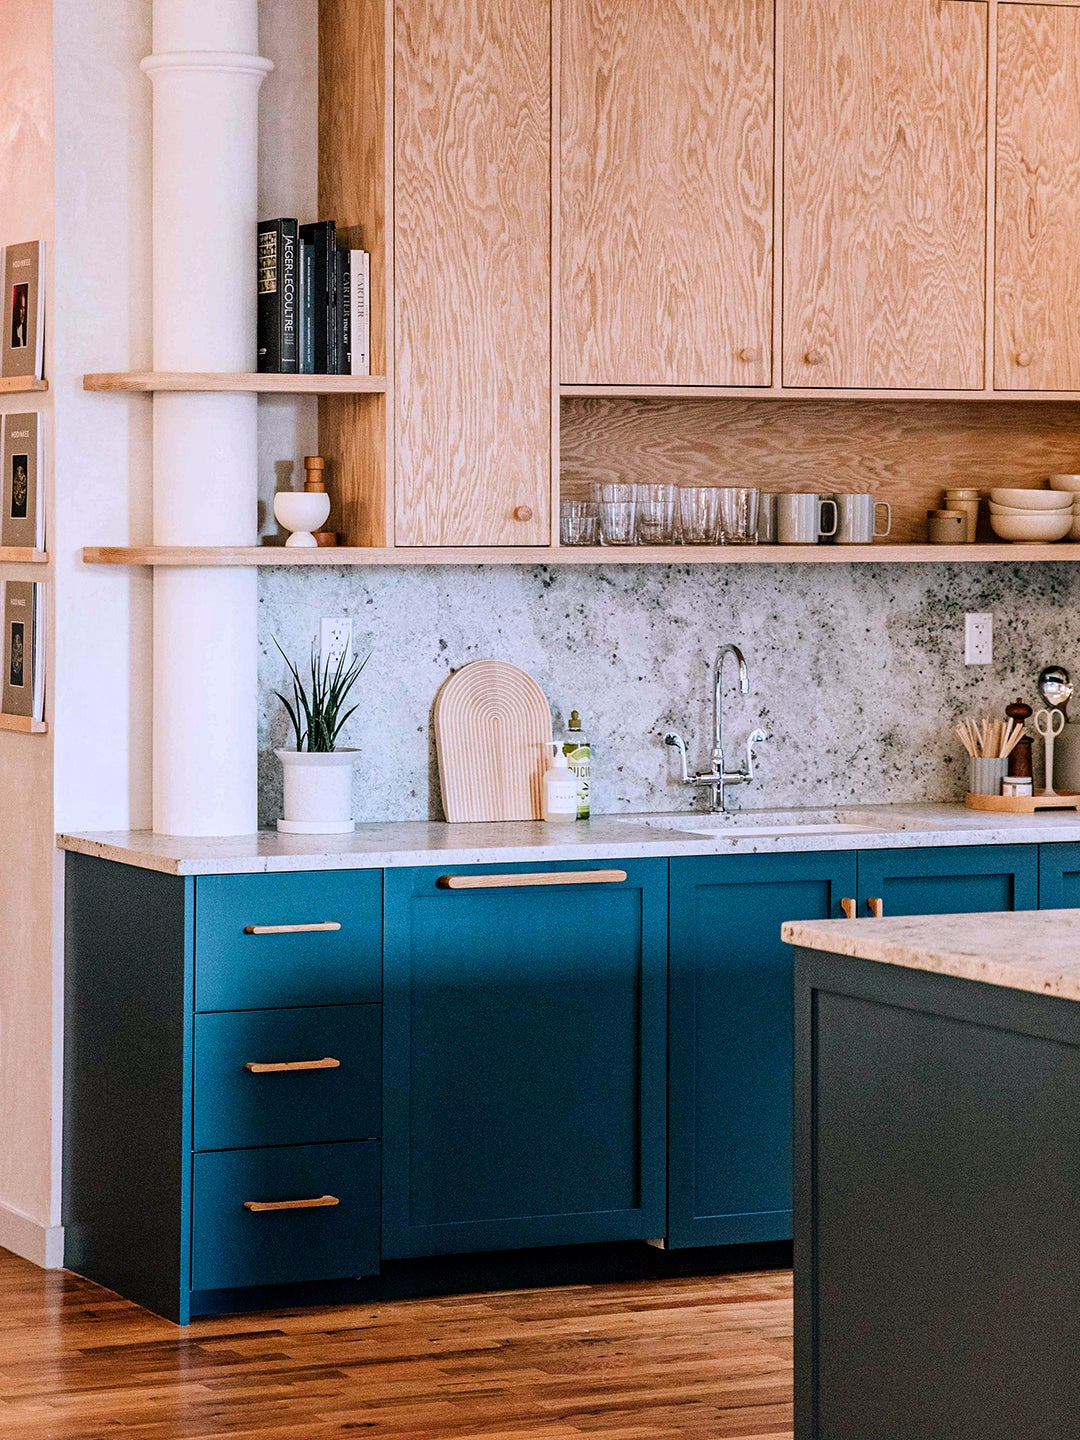 Kitchen with built in shelf and column